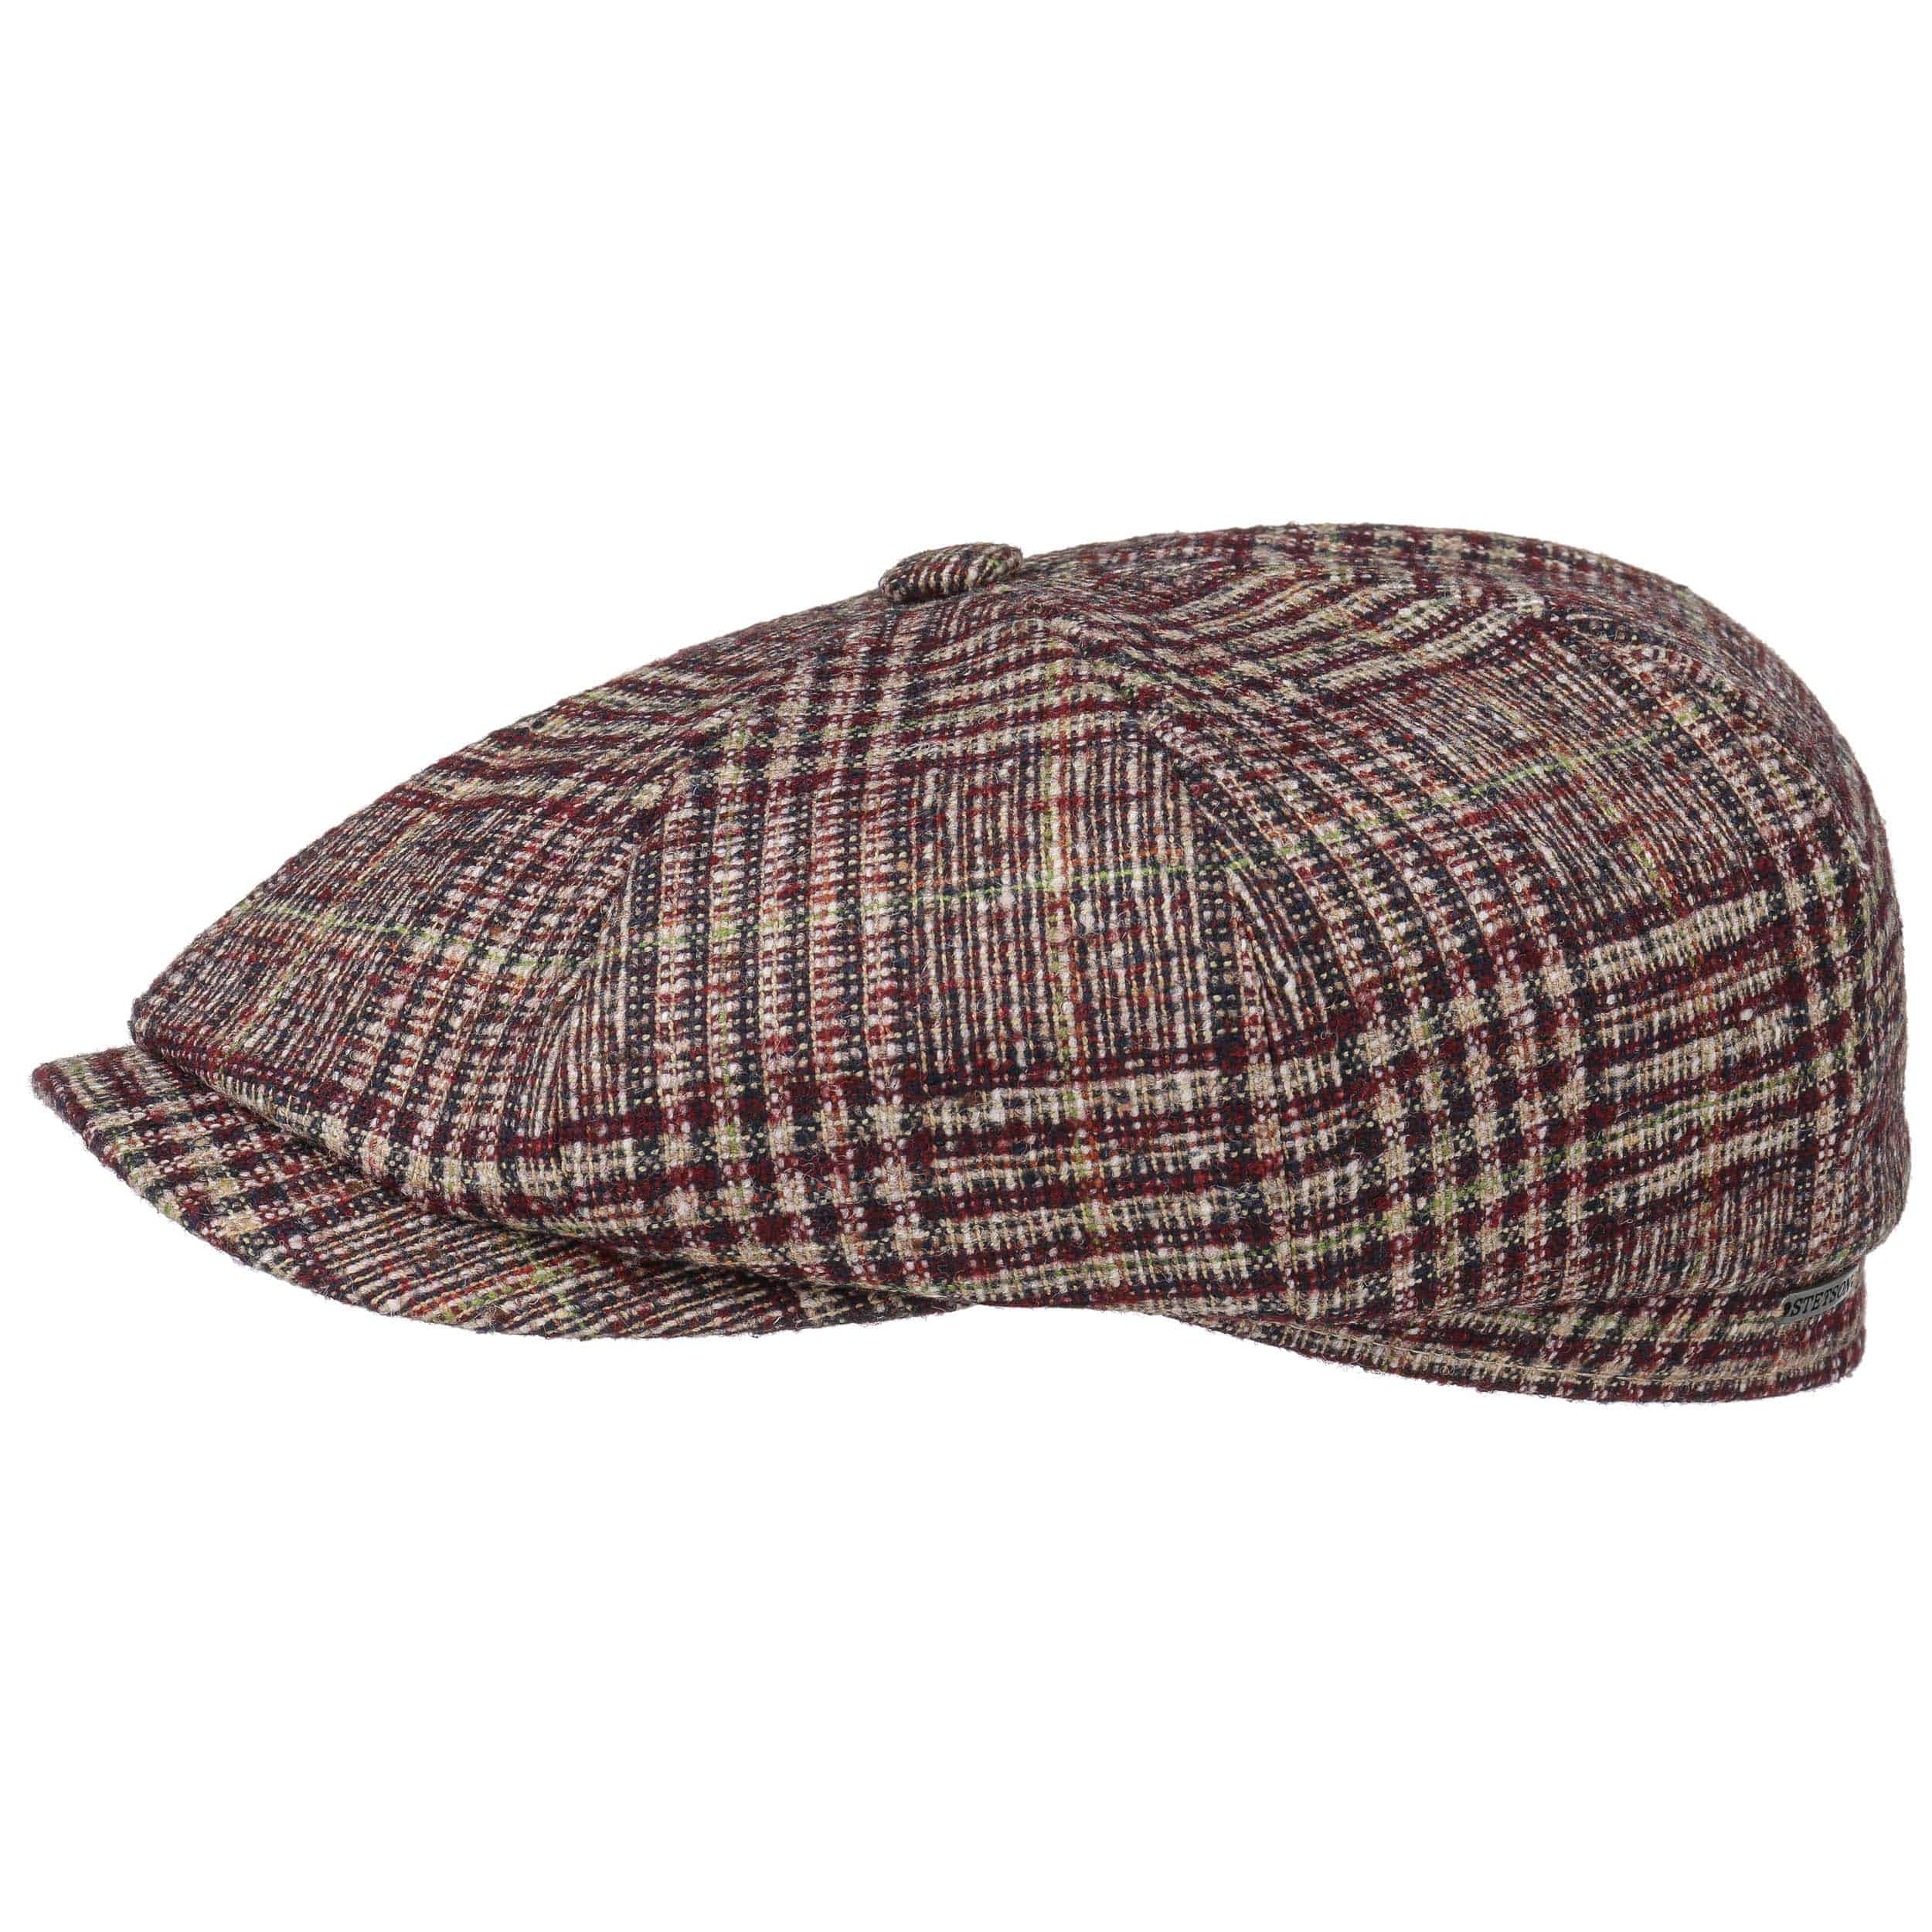 ... Hatteras Wool Plaid Flat Cap by Stetson - dark red 1 ... 9820a945402